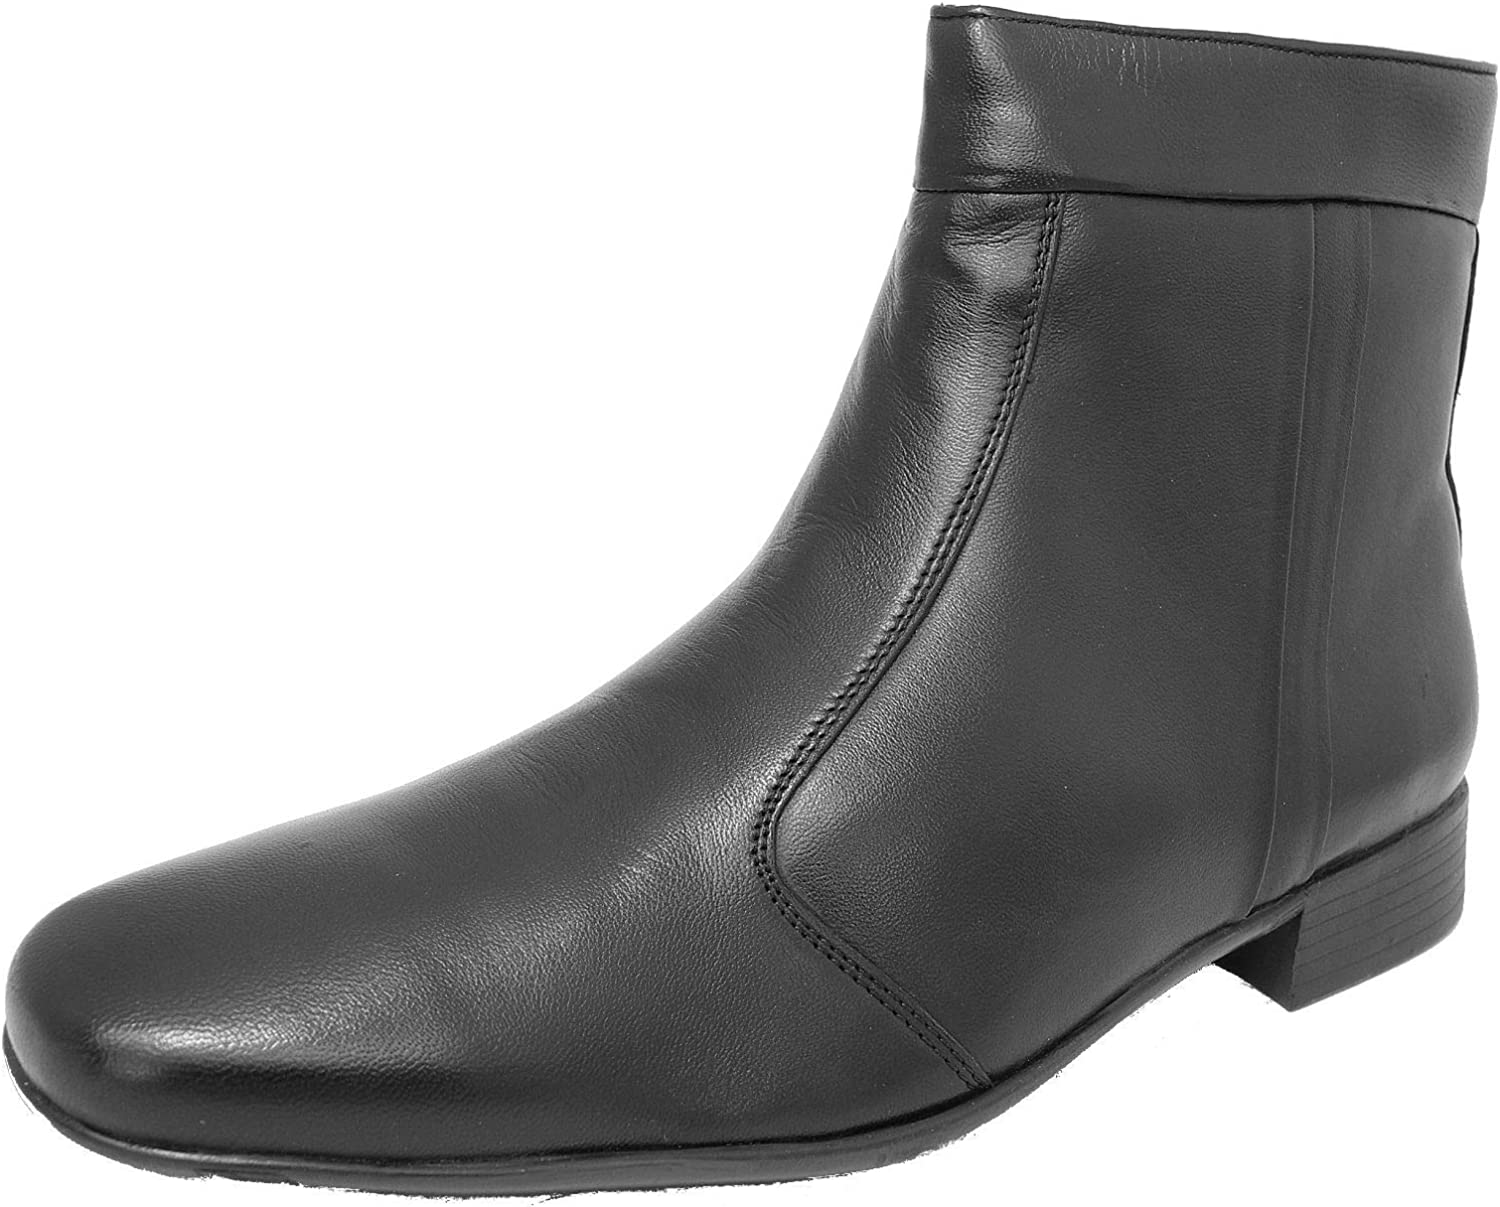 Scimitar Mens Real Leather Zipped